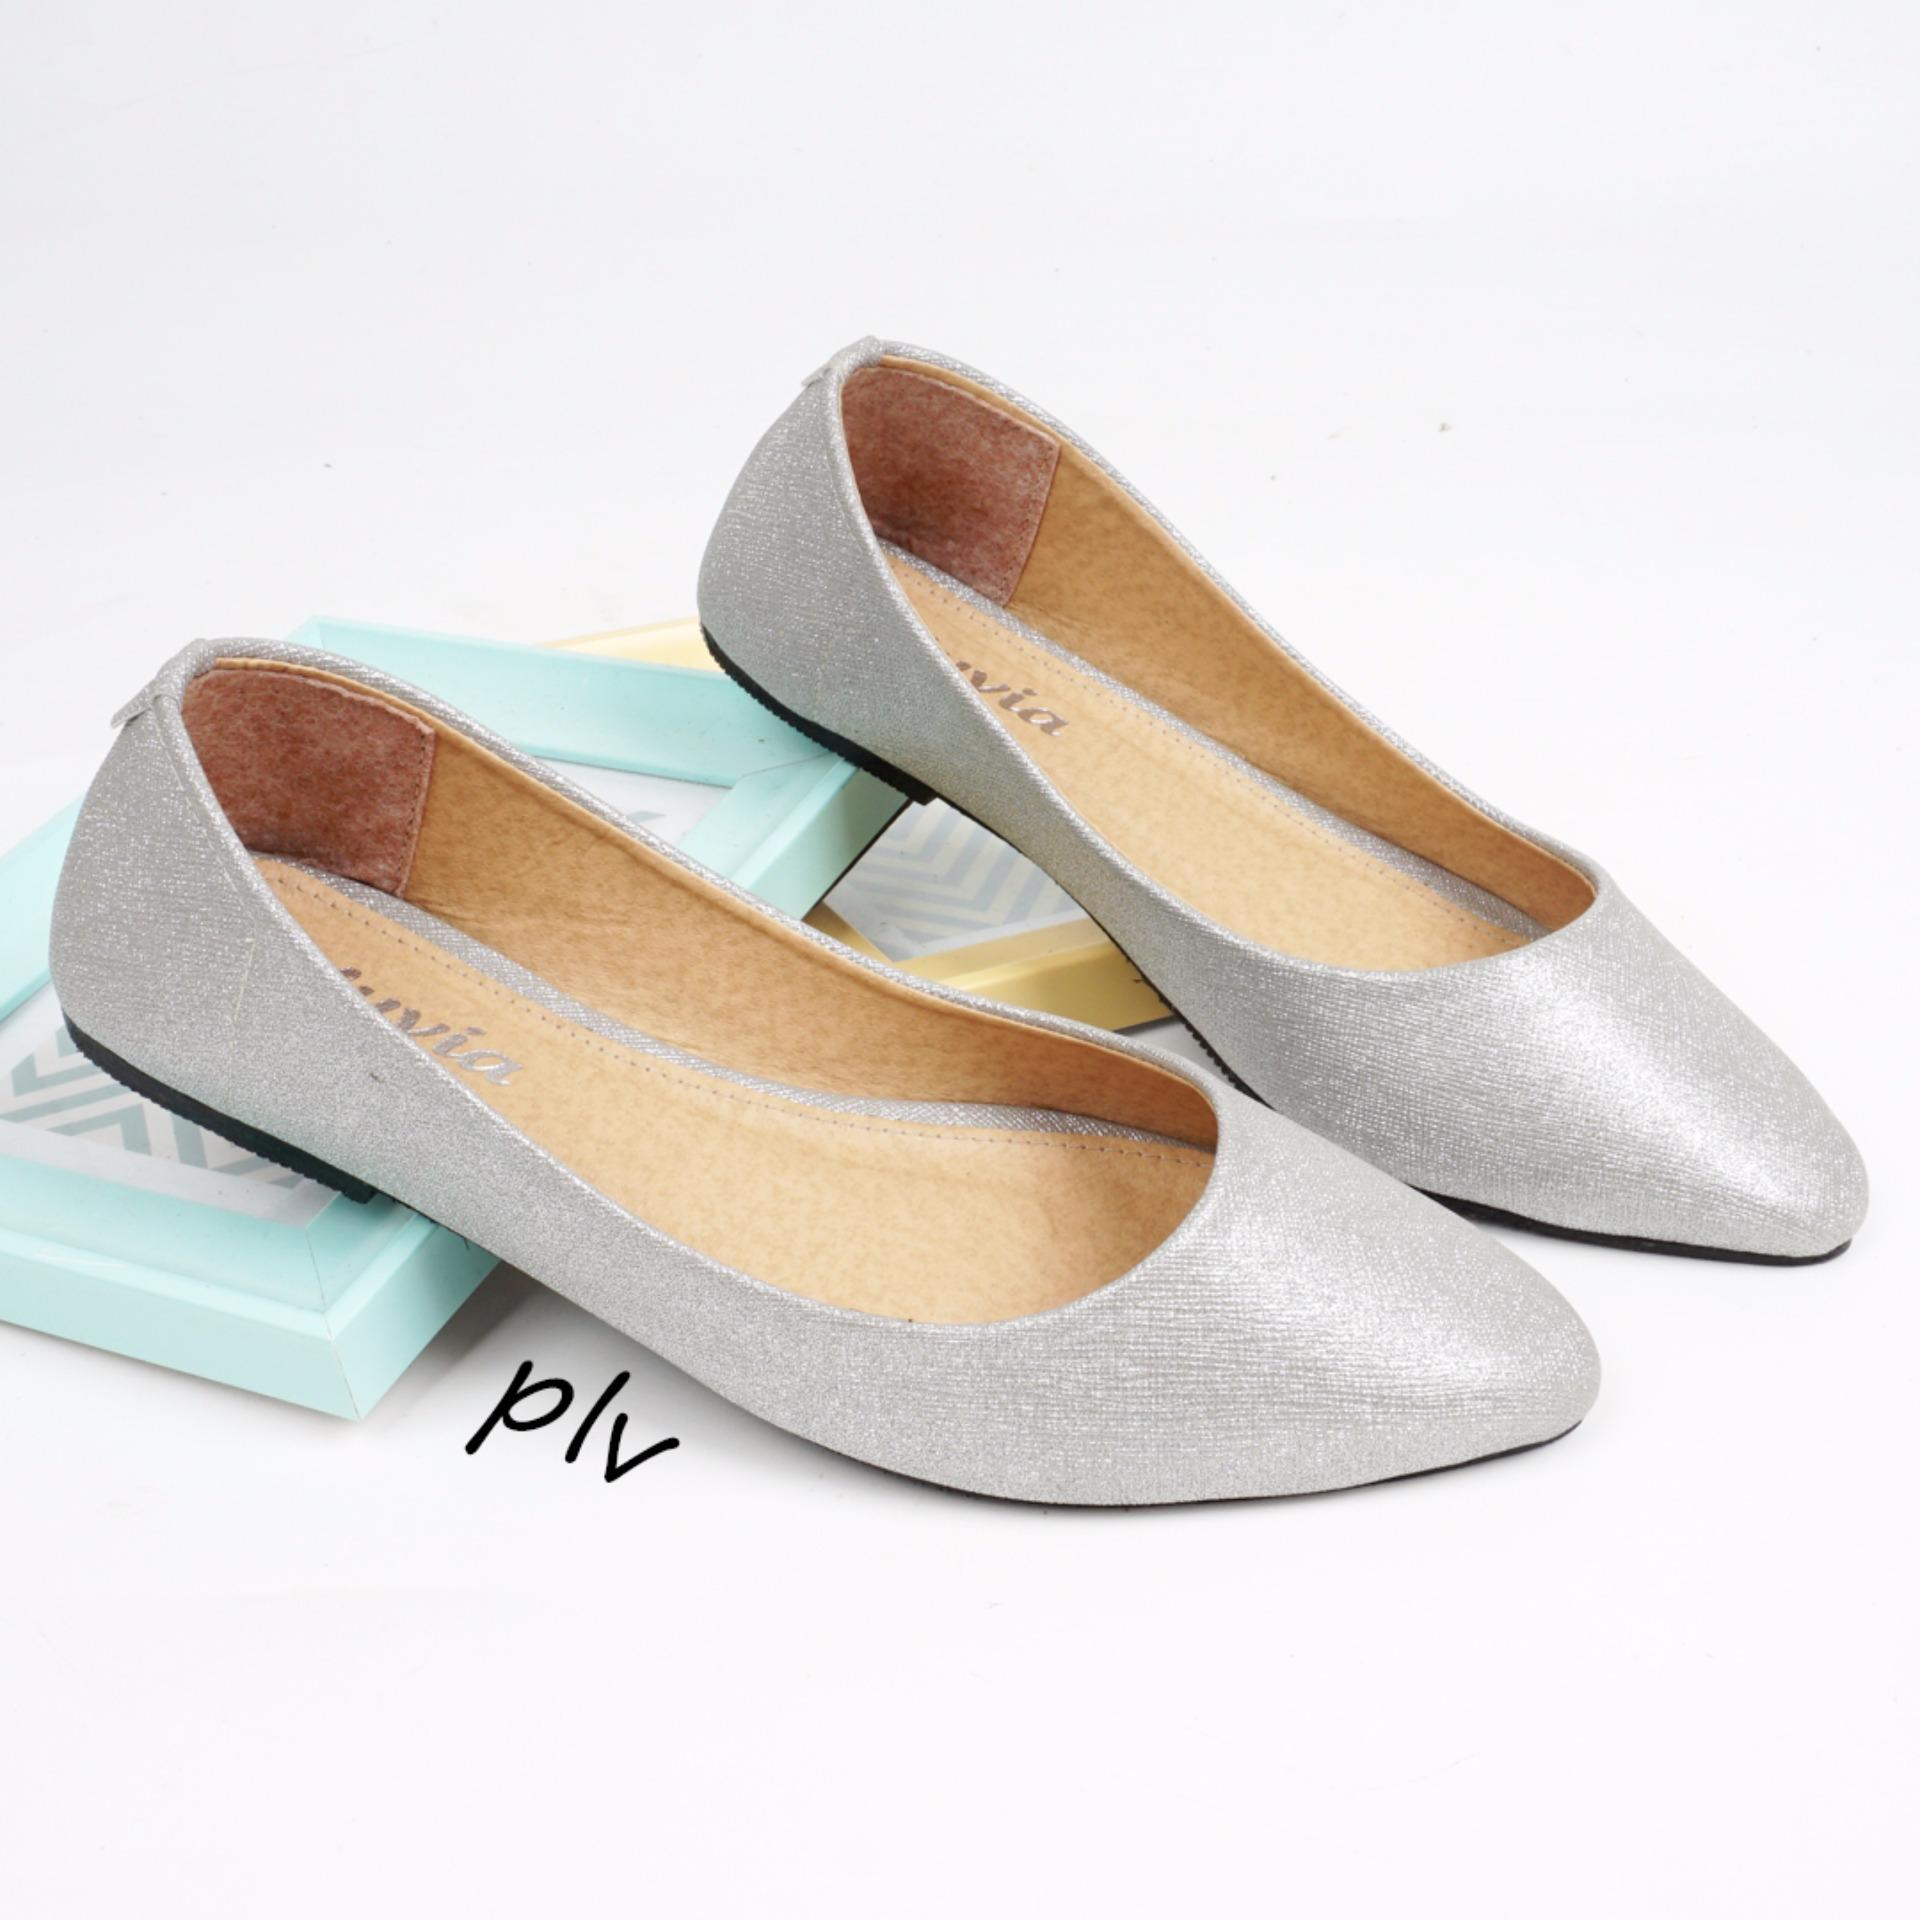 Review Tentang Pluvia Pointed Toe Flat Shoes Wanita Db169 Abu